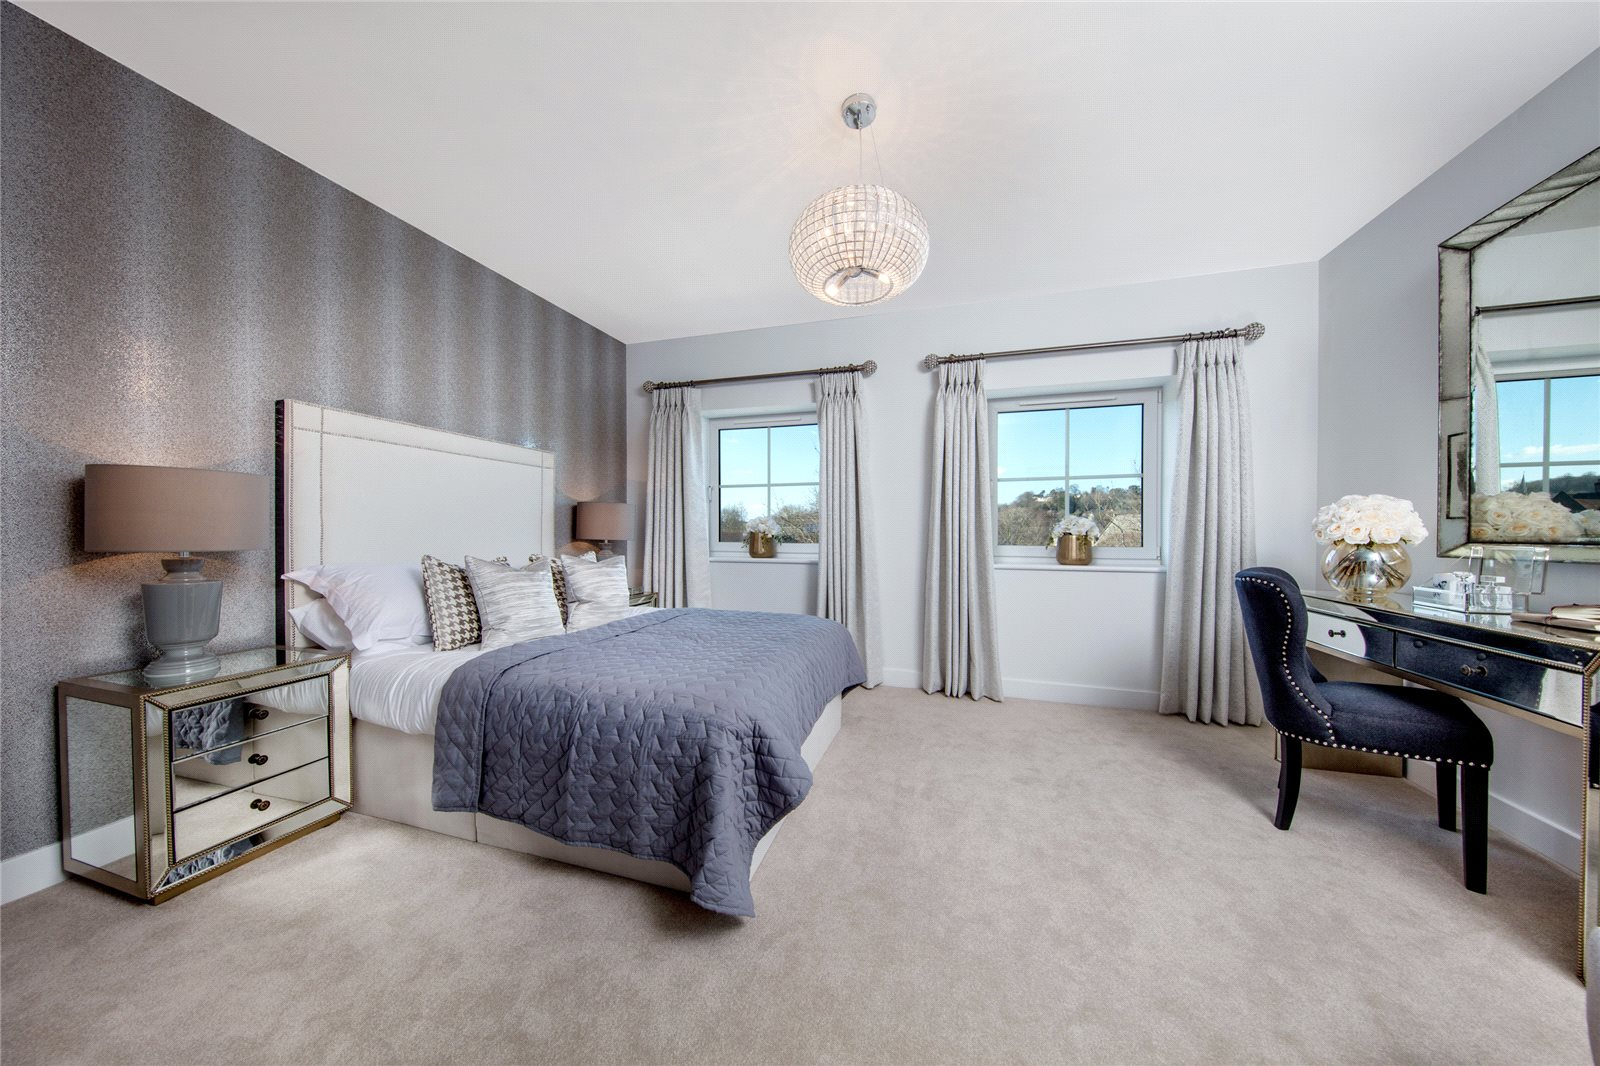 Prime Place,Master Bedroom